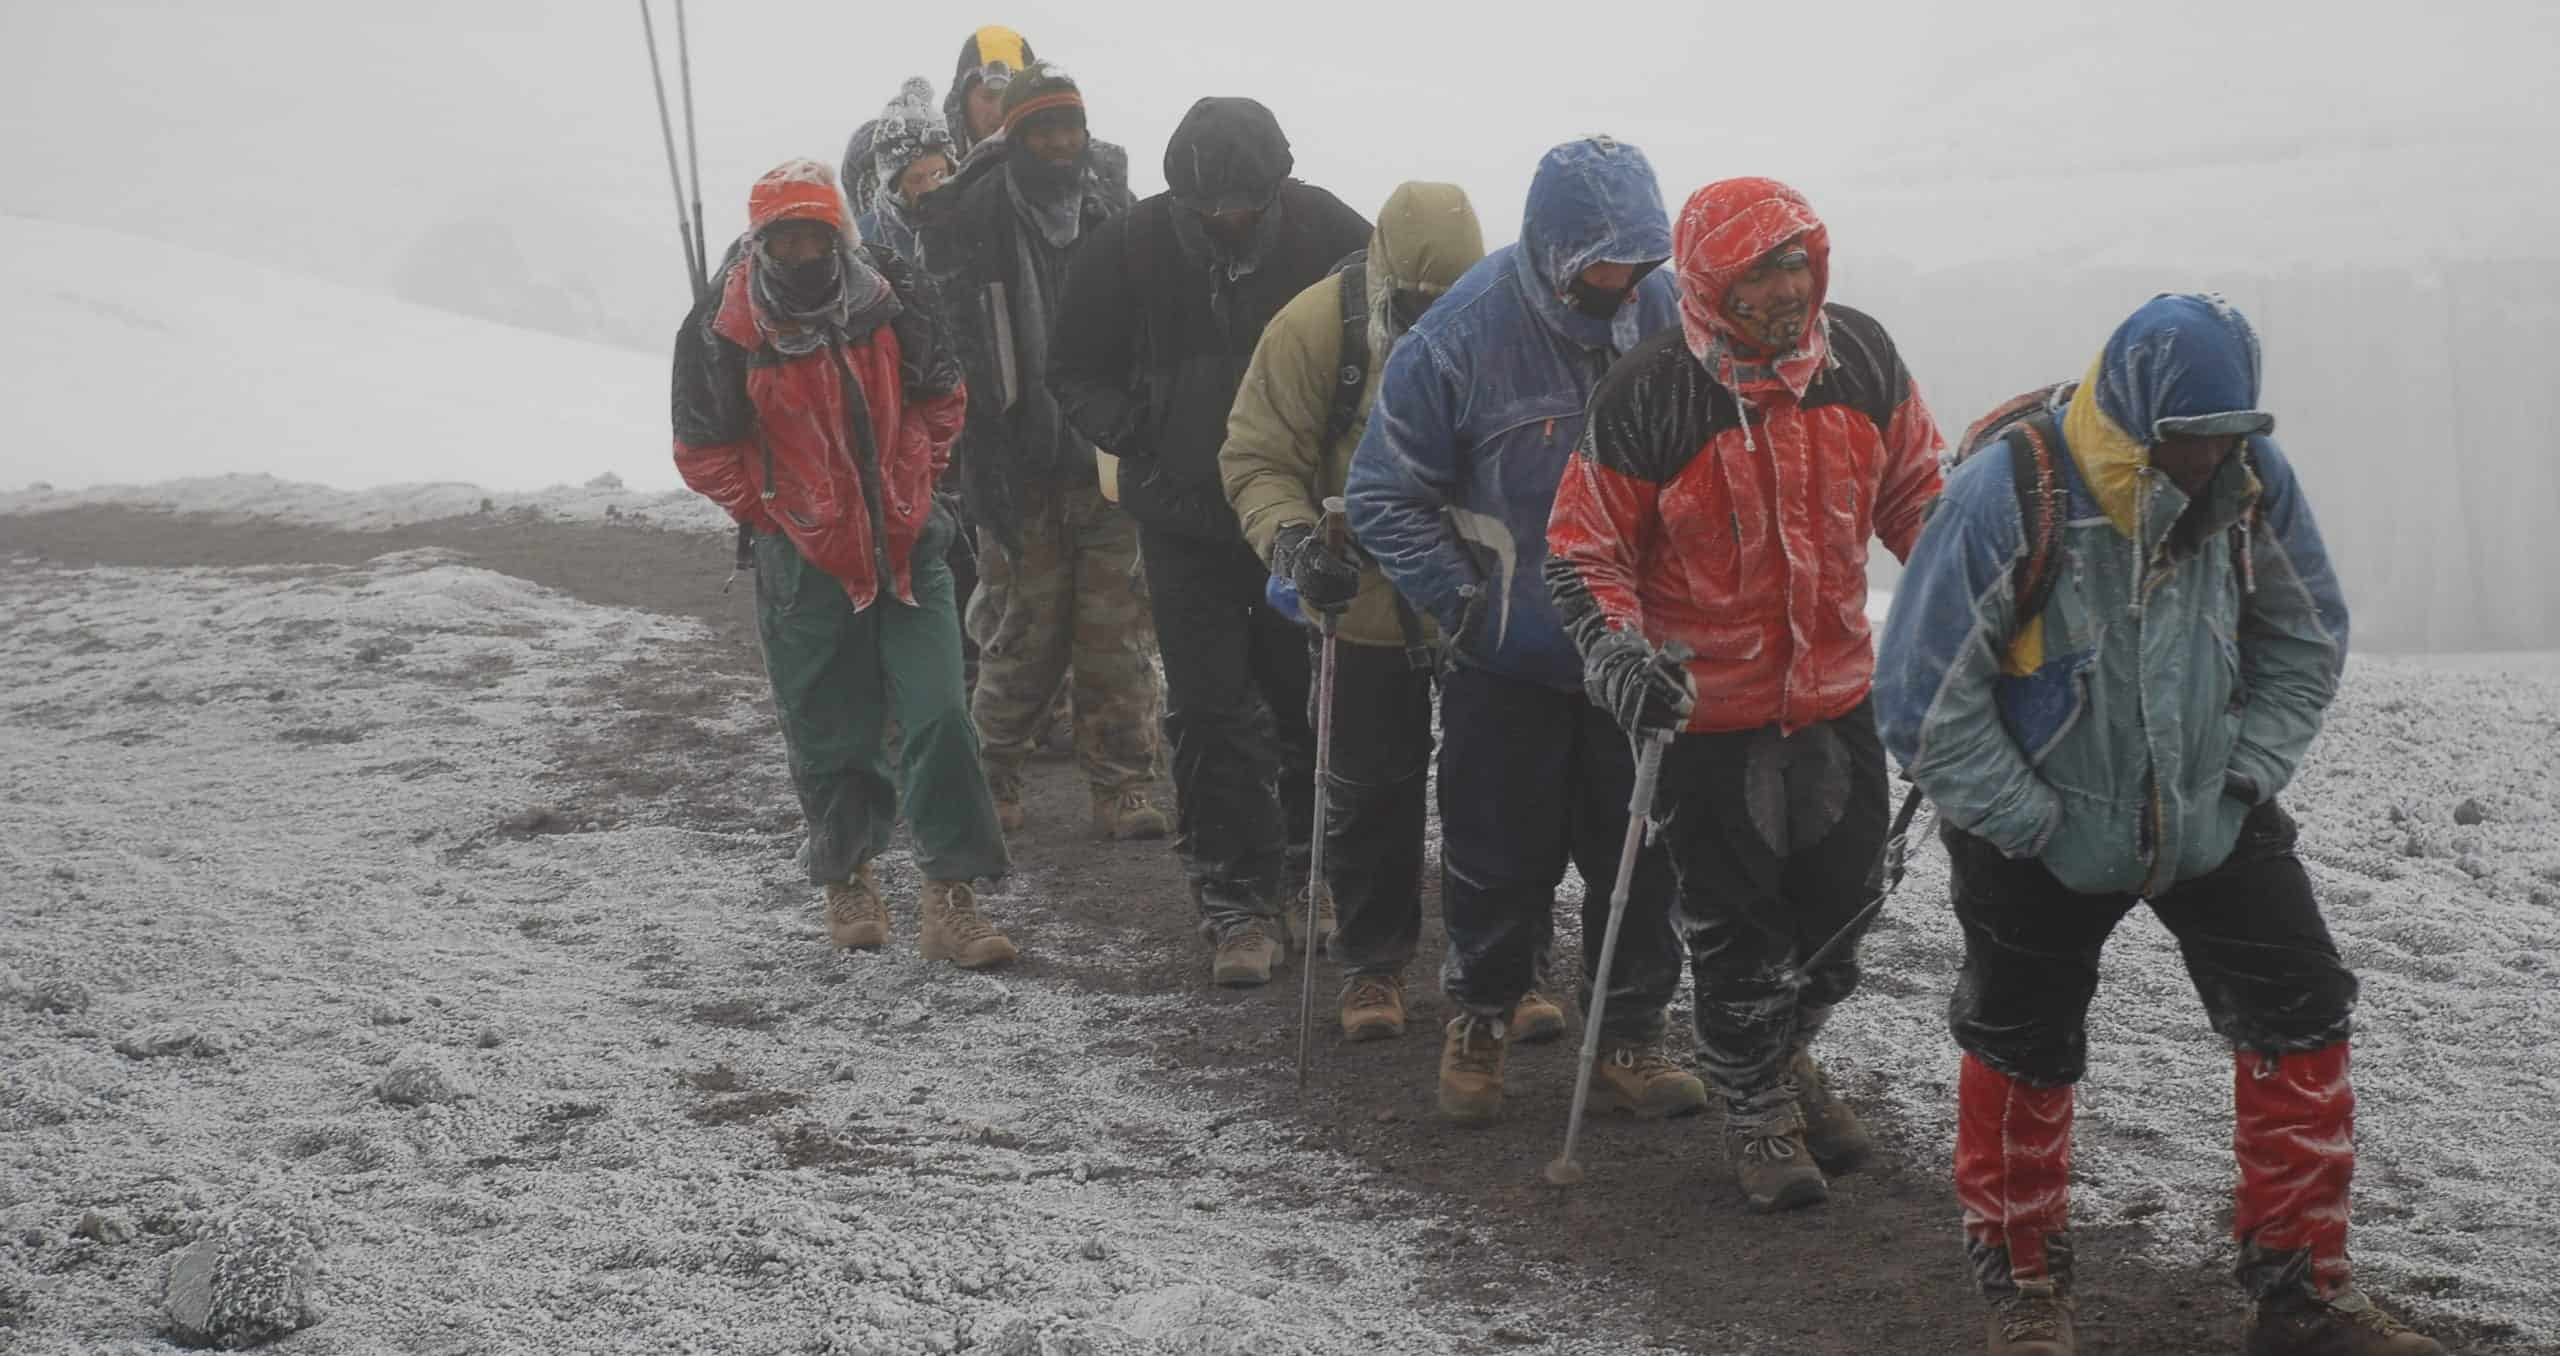 A row of trekkers and guides all frosted by snow trudge towards Kilimanjaro's summit on the crater rim